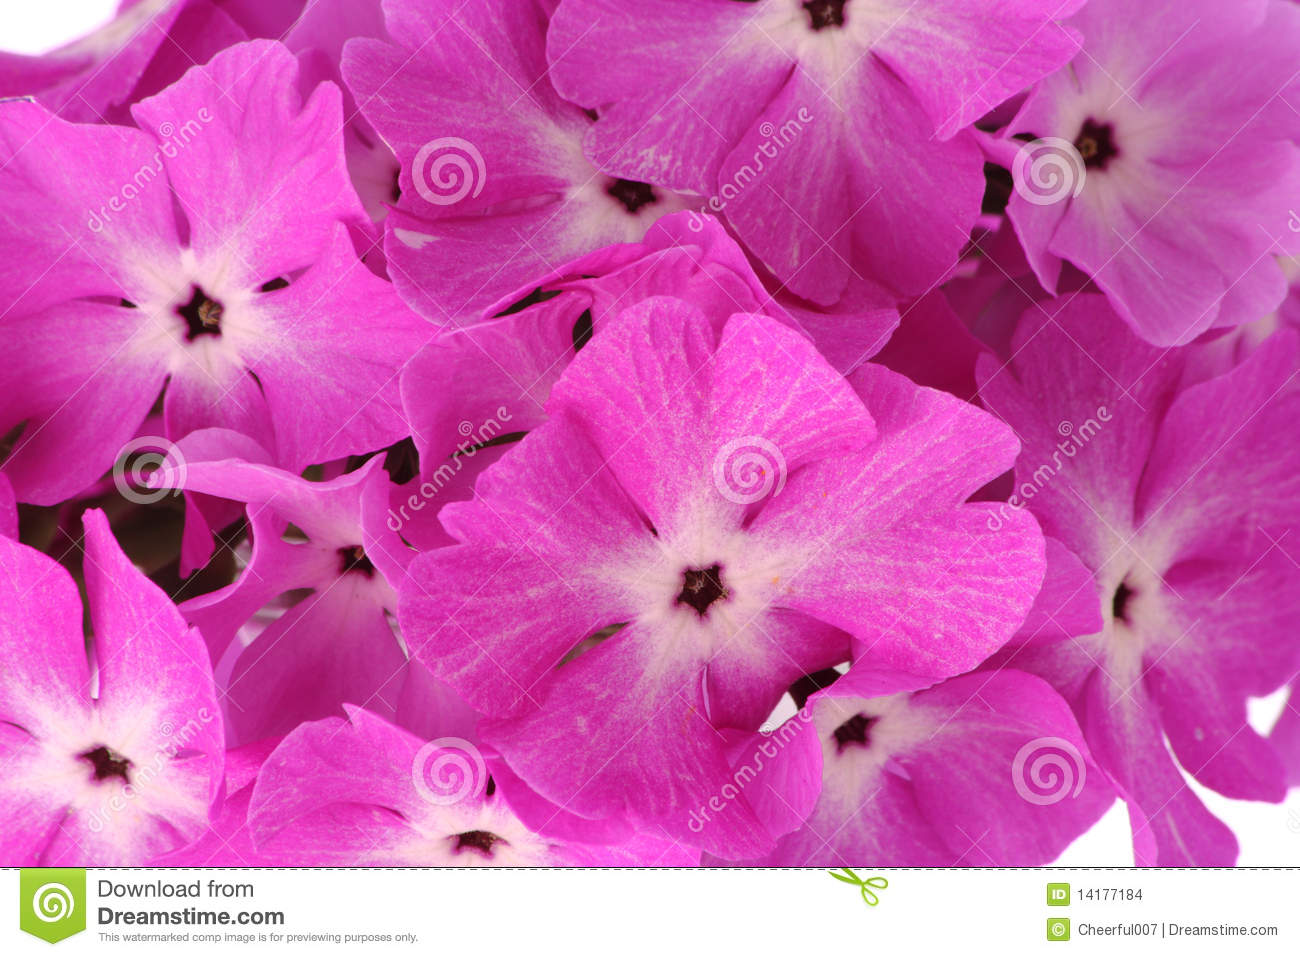 Beautiful background with pink flowers with heart-looking lobes.